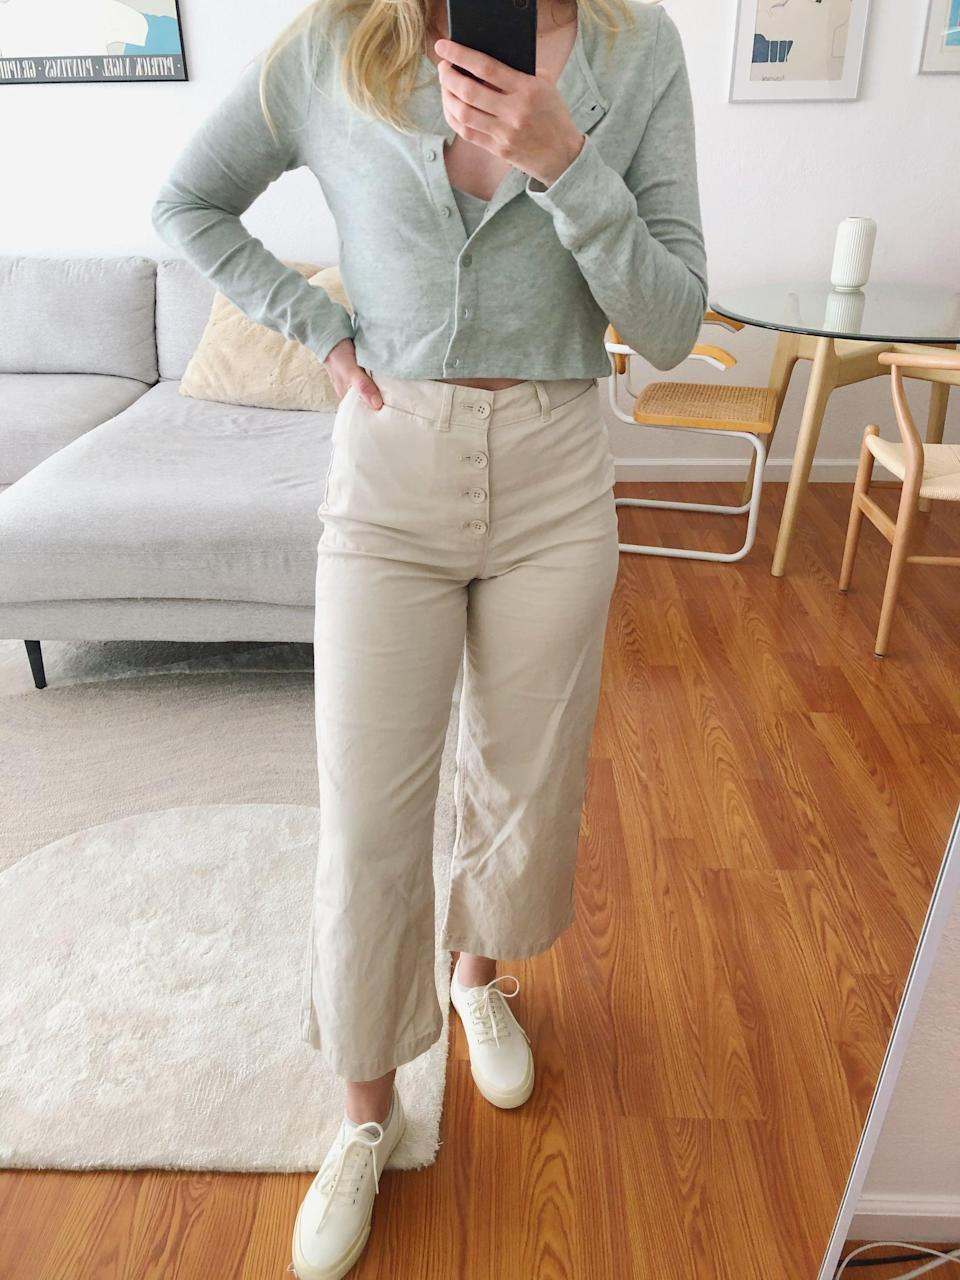 "<p><strong>Item</strong>: <span>Old Navy Wide-Leg Pants </span> (35, originally $40) </p> <p><strong>What our editor said:</strong> ""No matter how I style them, I find myself wanting to wear them again and again. The flattering silhouette not only looks good, but they feel good, too. I chose them in a beige shade, because I love wearing neutrals, but they come in two other fun options as well."" - KJ If you want to read more, here is the <a href=""https://www.popsugar.com/fashion/comfortable-wide-leg-pants-from-old-navy-editor-review-47802124"" class=""link rapid-noclick-resp"" rel=""nofollow noopener"" target=""_blank"" data-ylk=""slk:complete review"">complete review</a>.</p>"